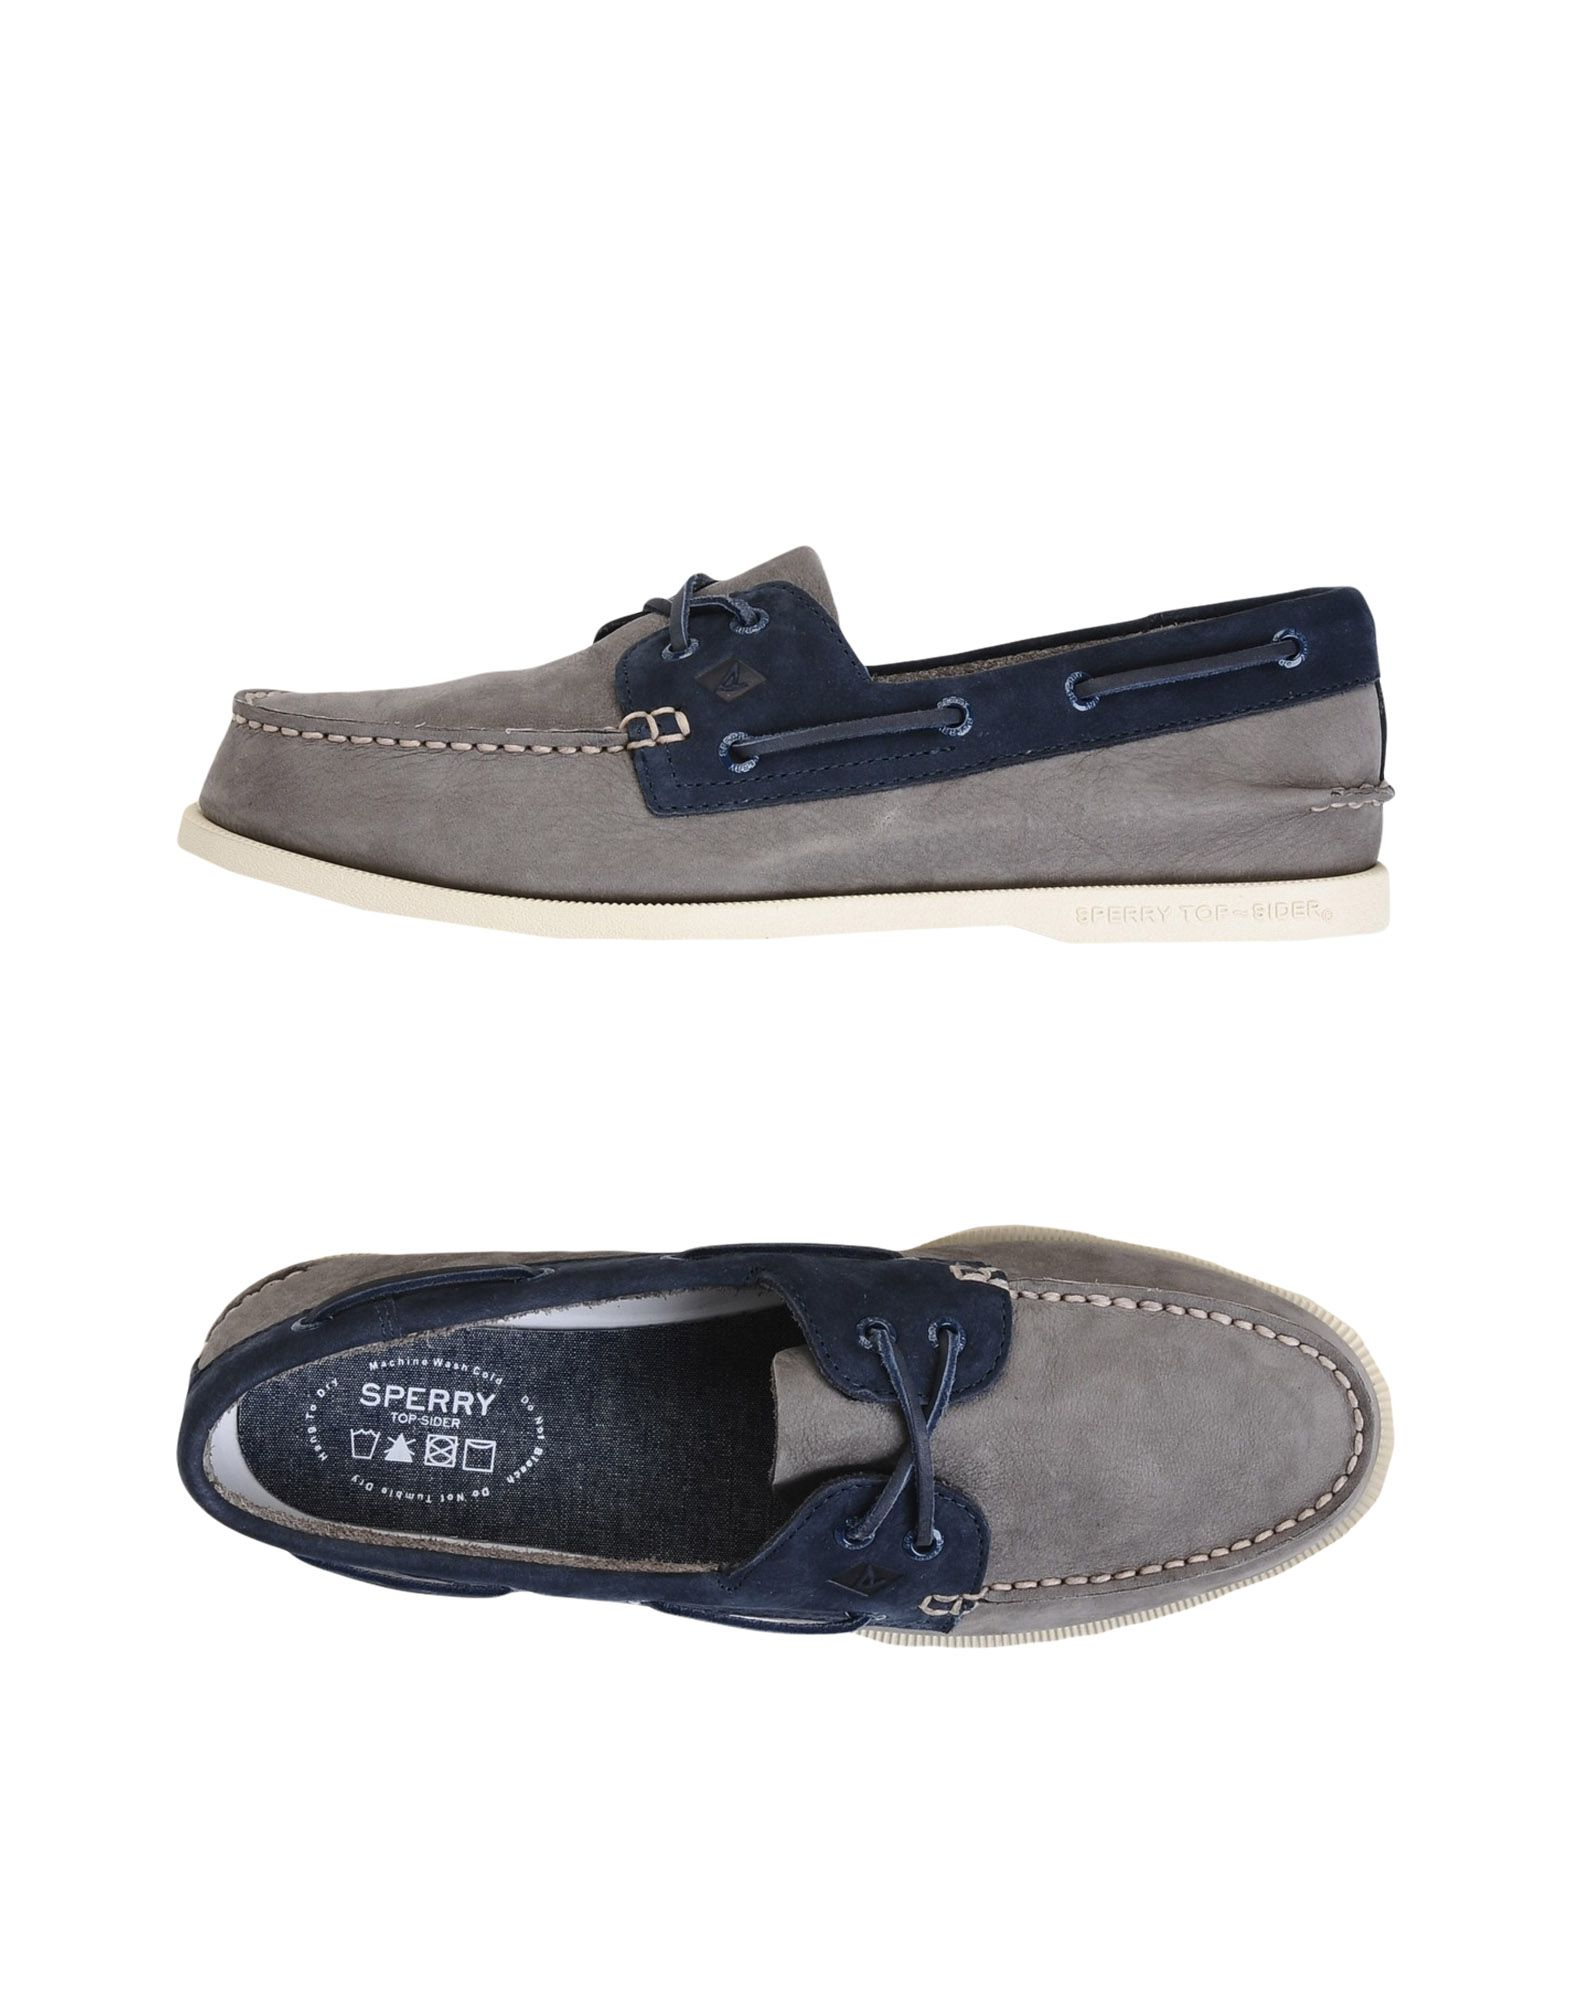 Sperry Top-Sider A/O 2-Eye Washable - Loafers Loafers - Men Sperry Top-Sider Loafers Loafers online on  Canada - 11456897HB 92328b